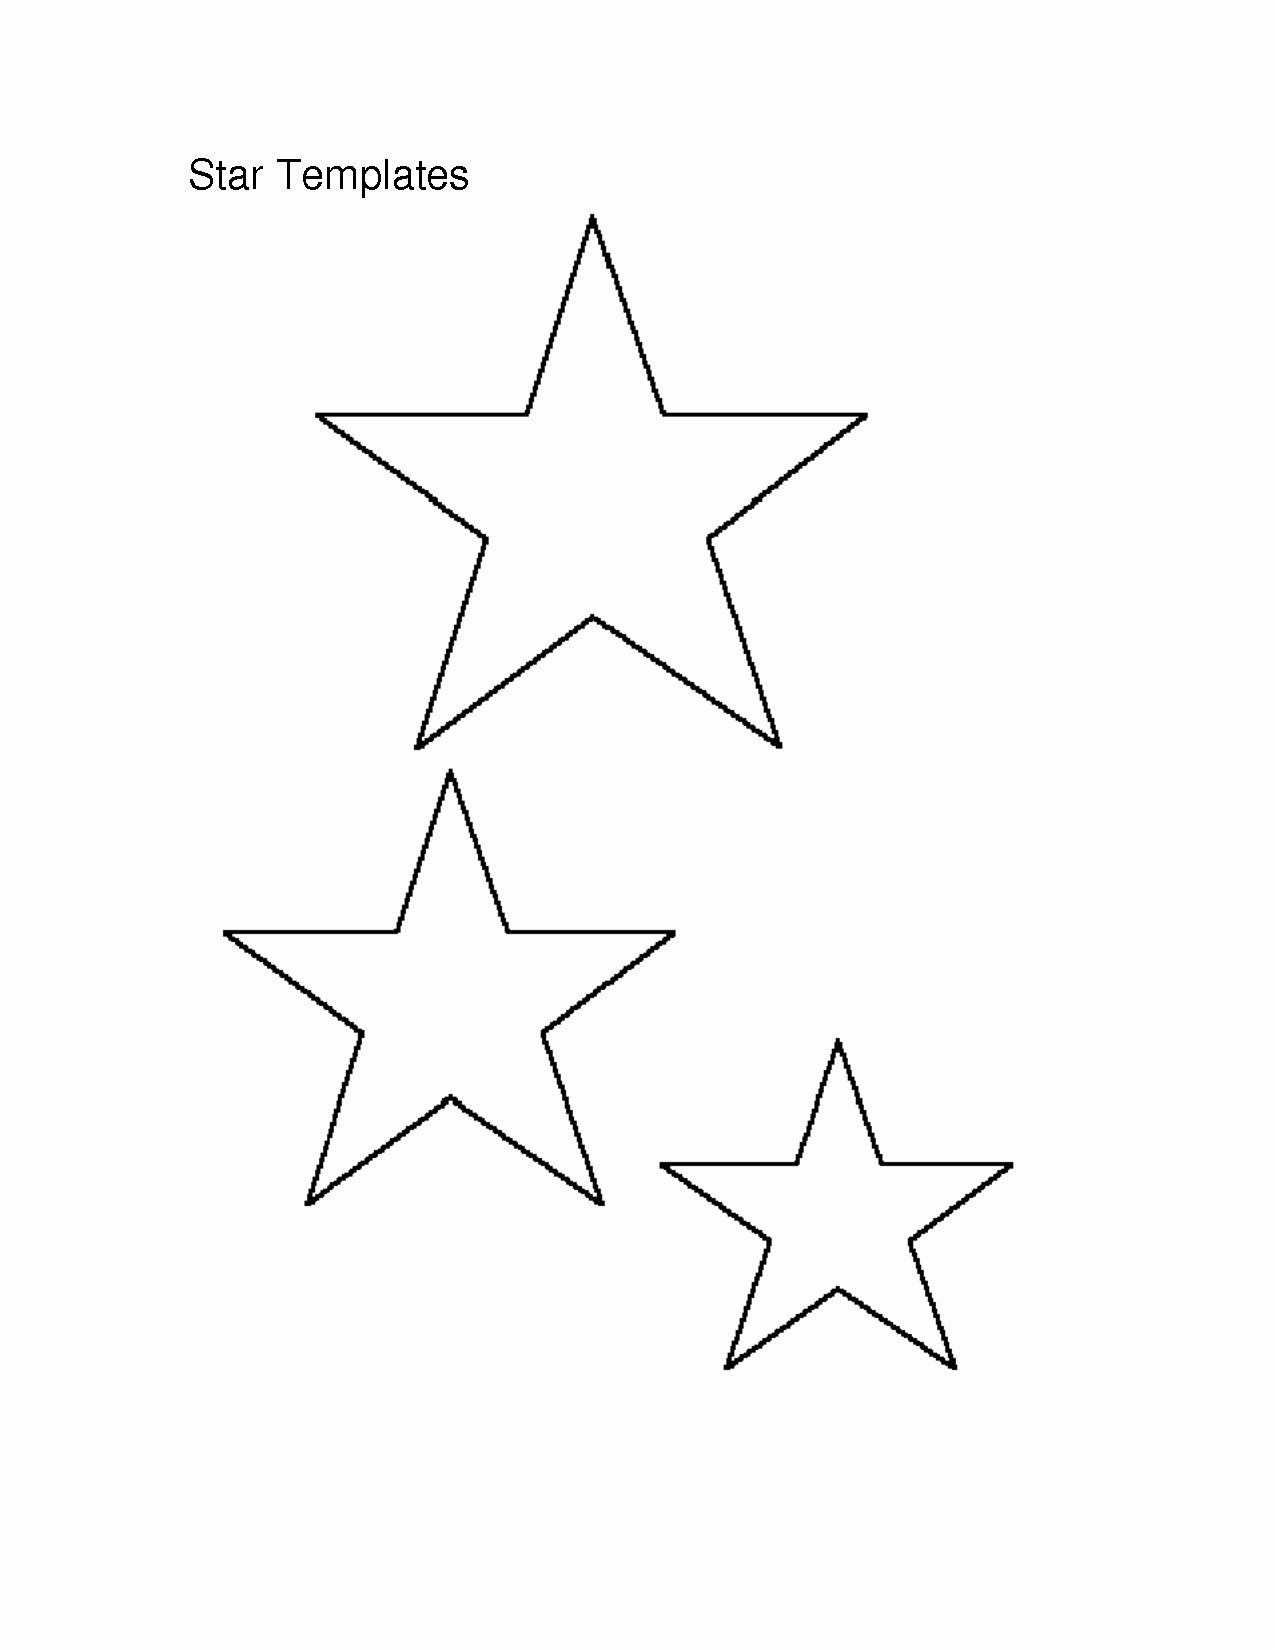 3 Inch Star Template Lovely 7 Best Of Free Printable Star Templates Star Template Star Template Printable Star Outline